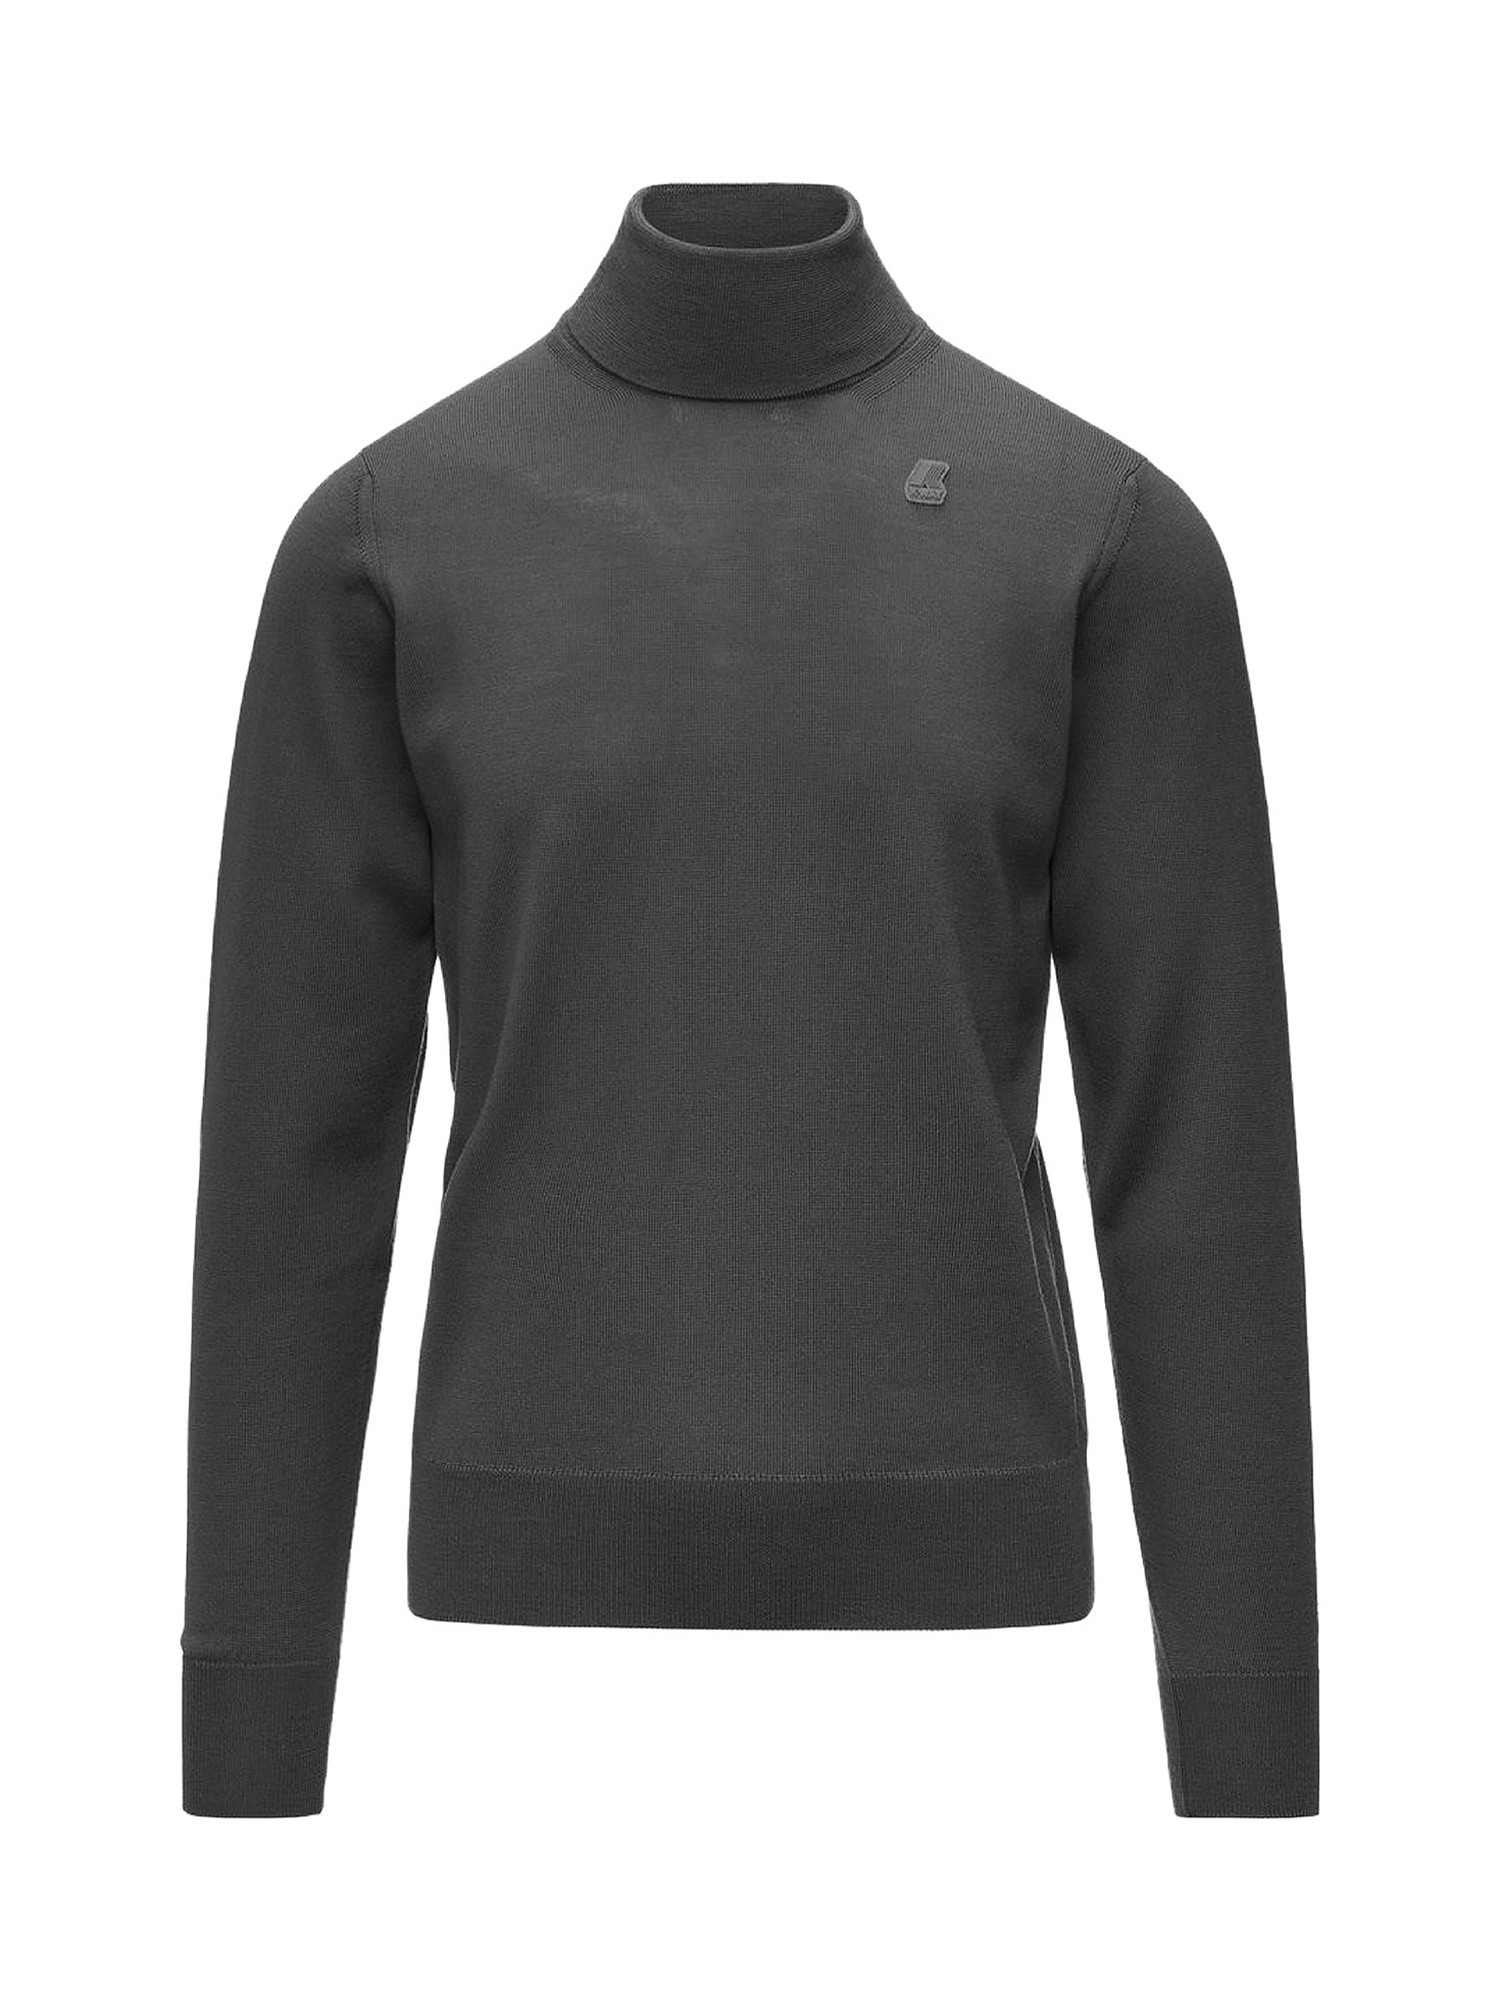 Maglione in lana merino Henry, Grigio, large image number 0